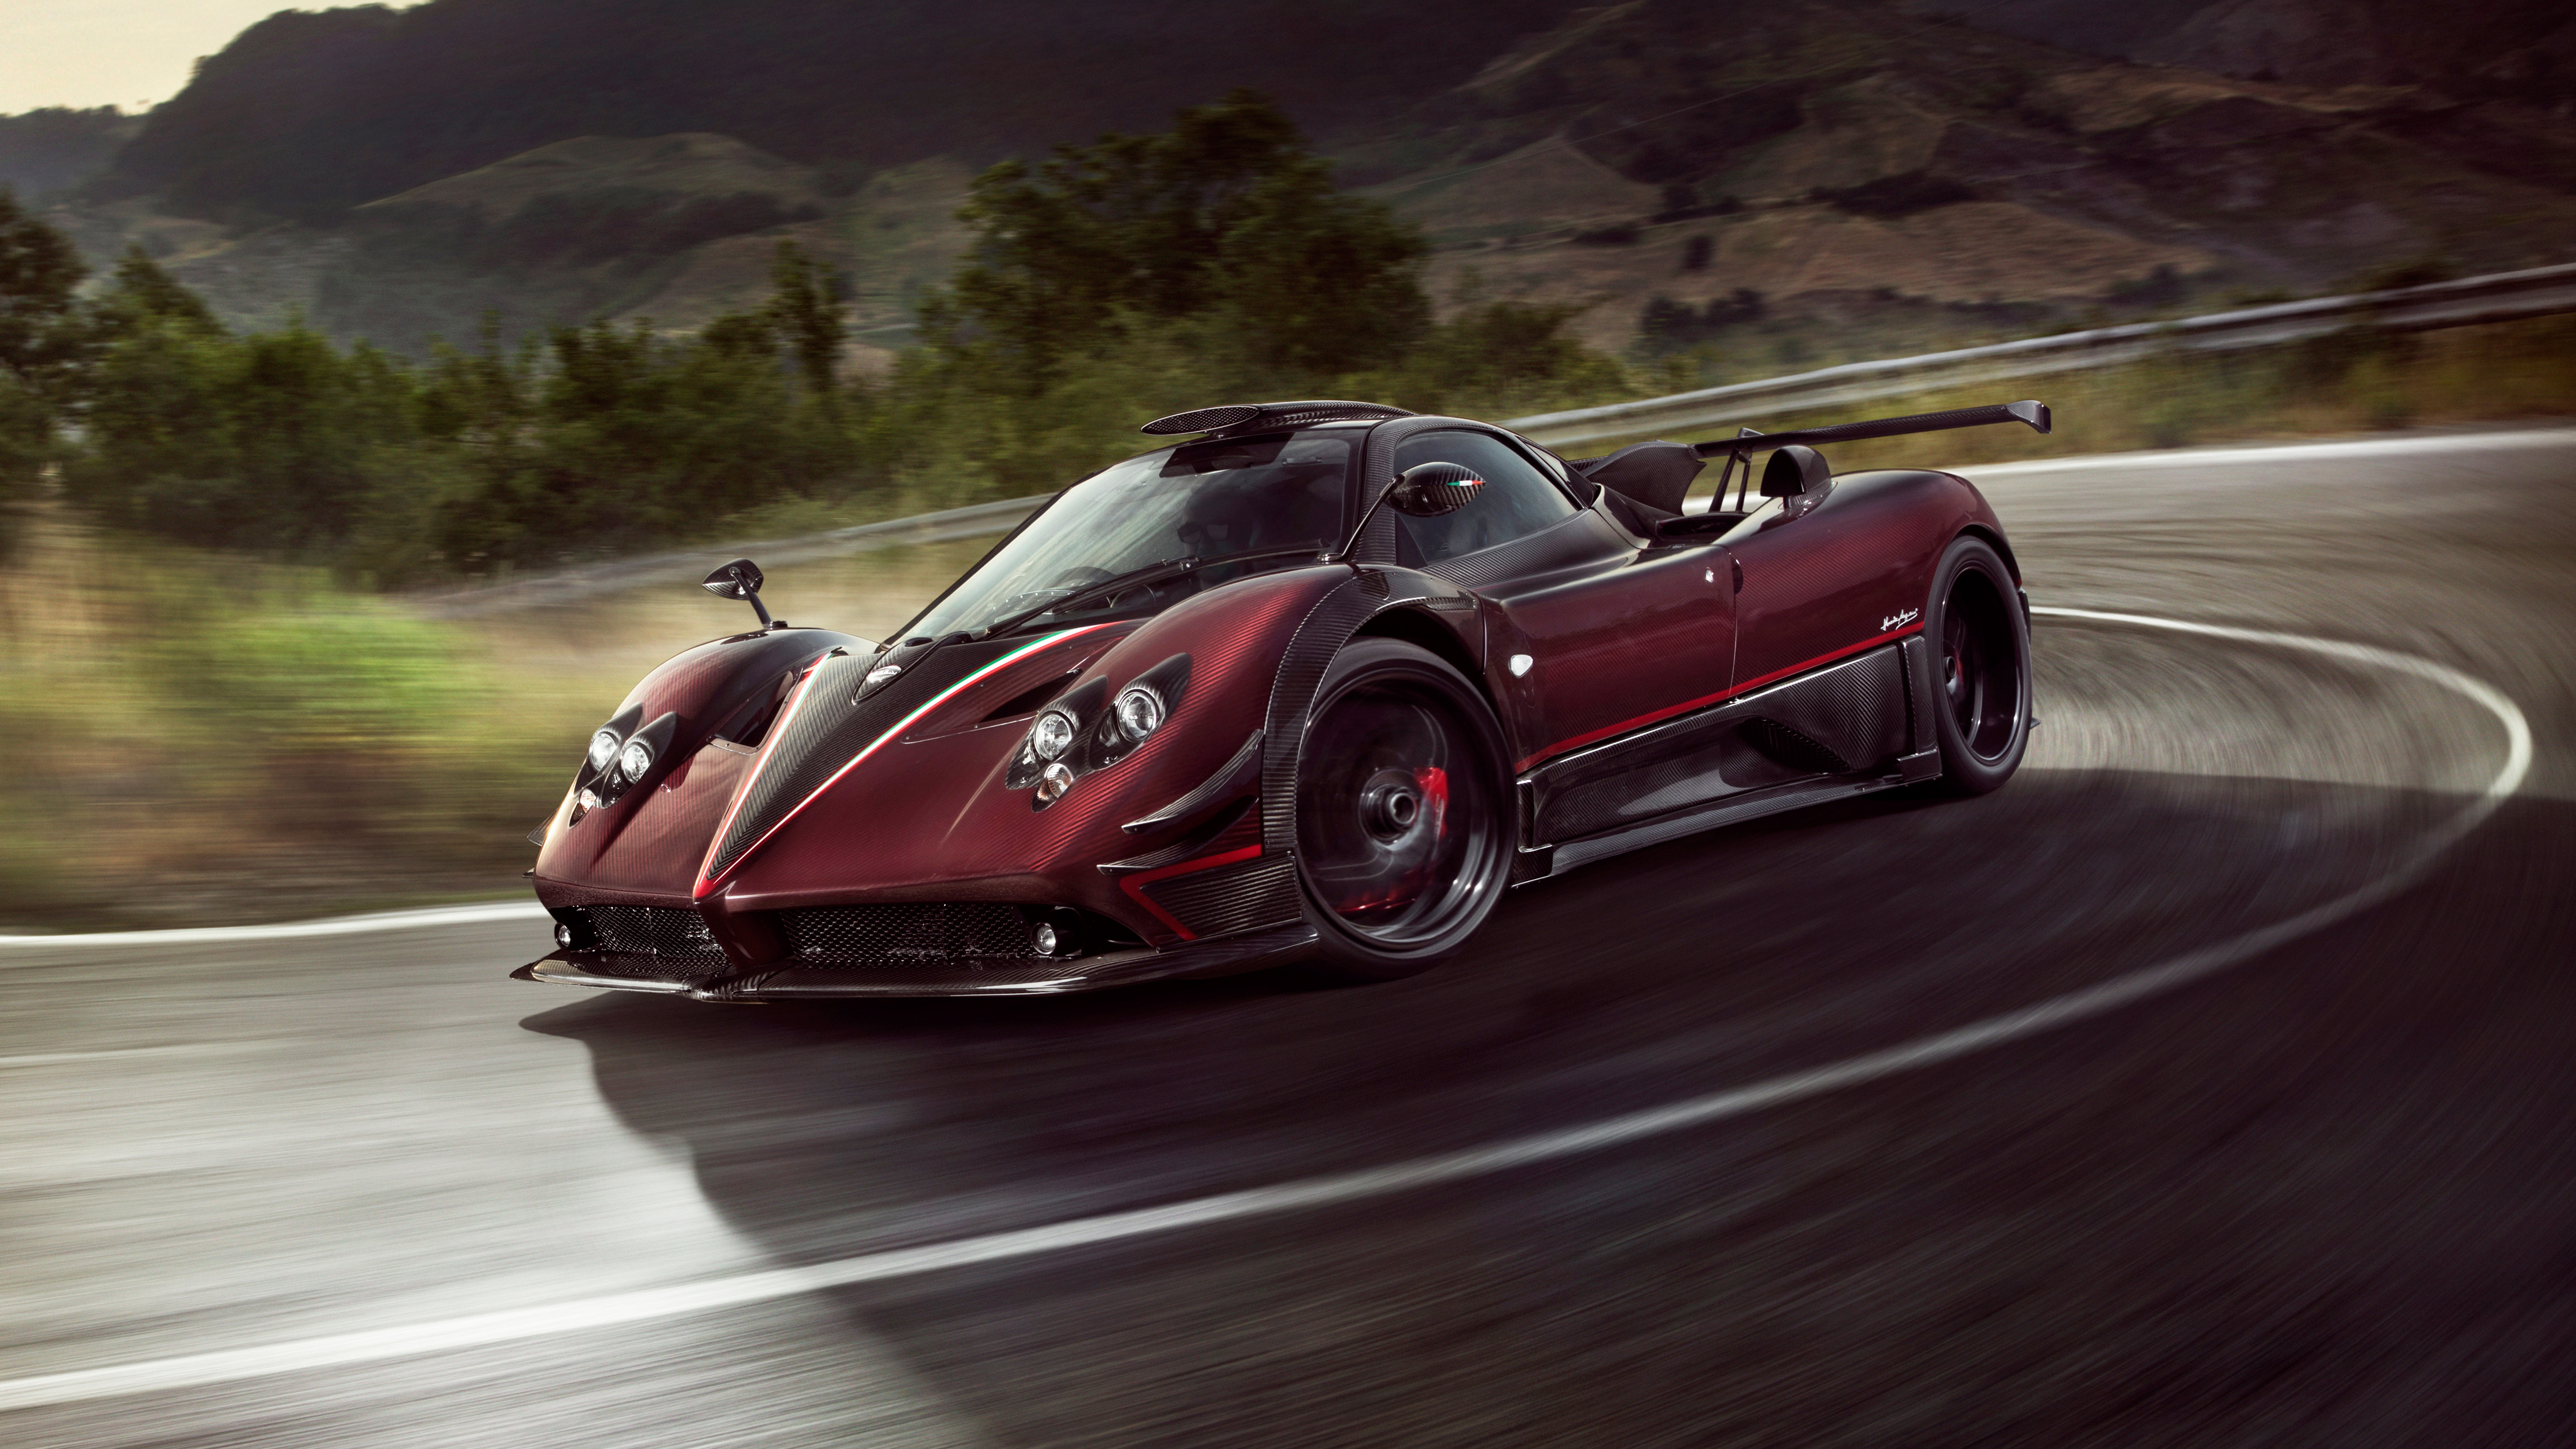 pagani car wallpapers pictures pagani widescreen hd desktop